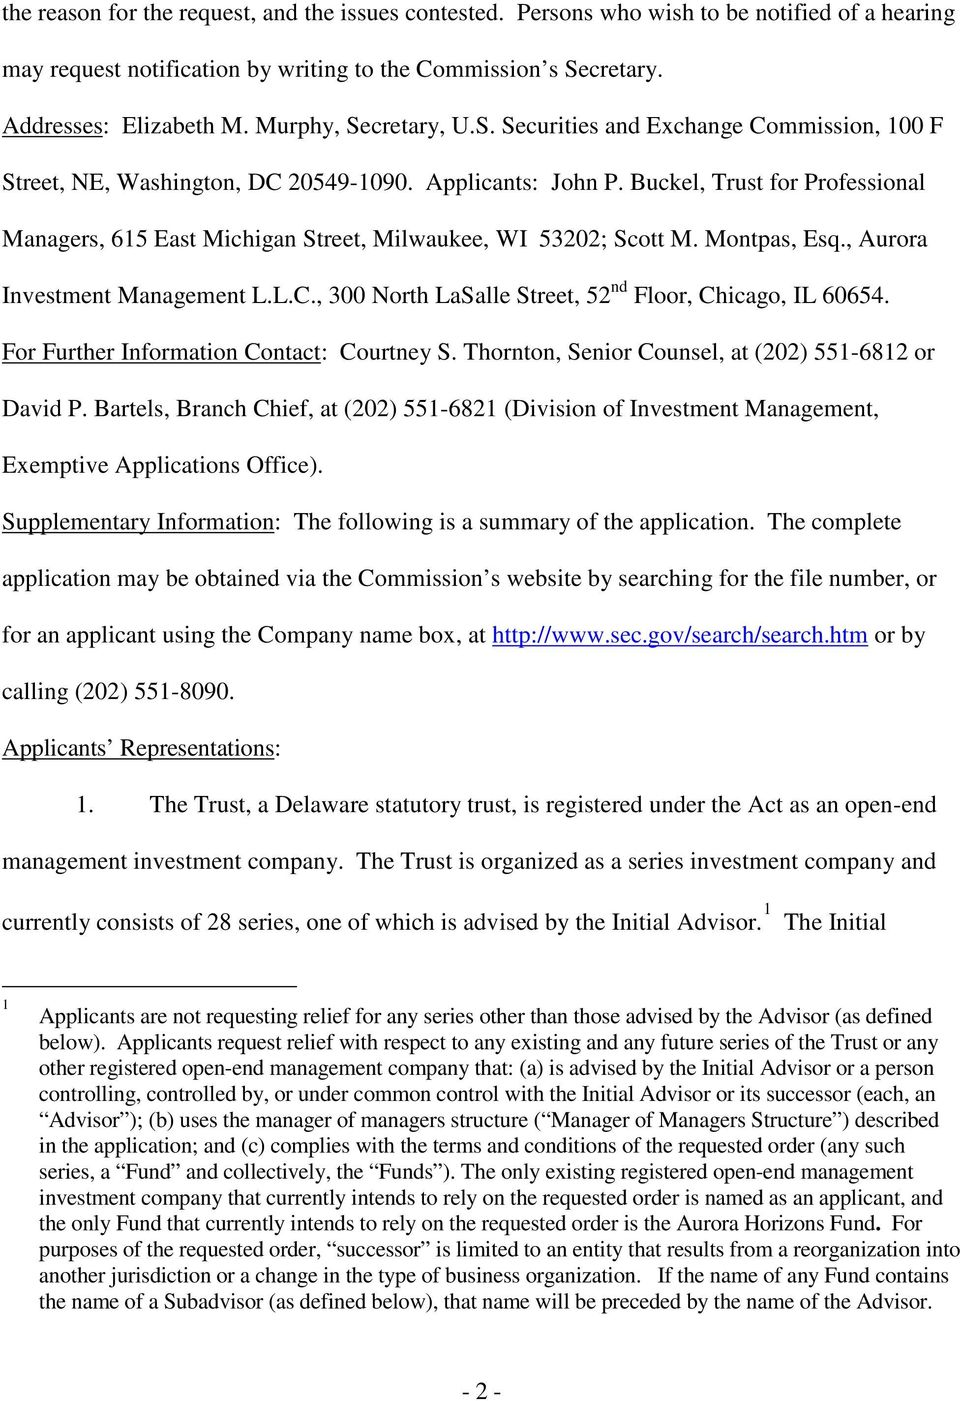 Buckel, Trust for Professional Managers, 615 East Michigan Street, Milwaukee, WI 53202; Scott M. Montpas, Esq., Aurora Investment Management L.L.C.